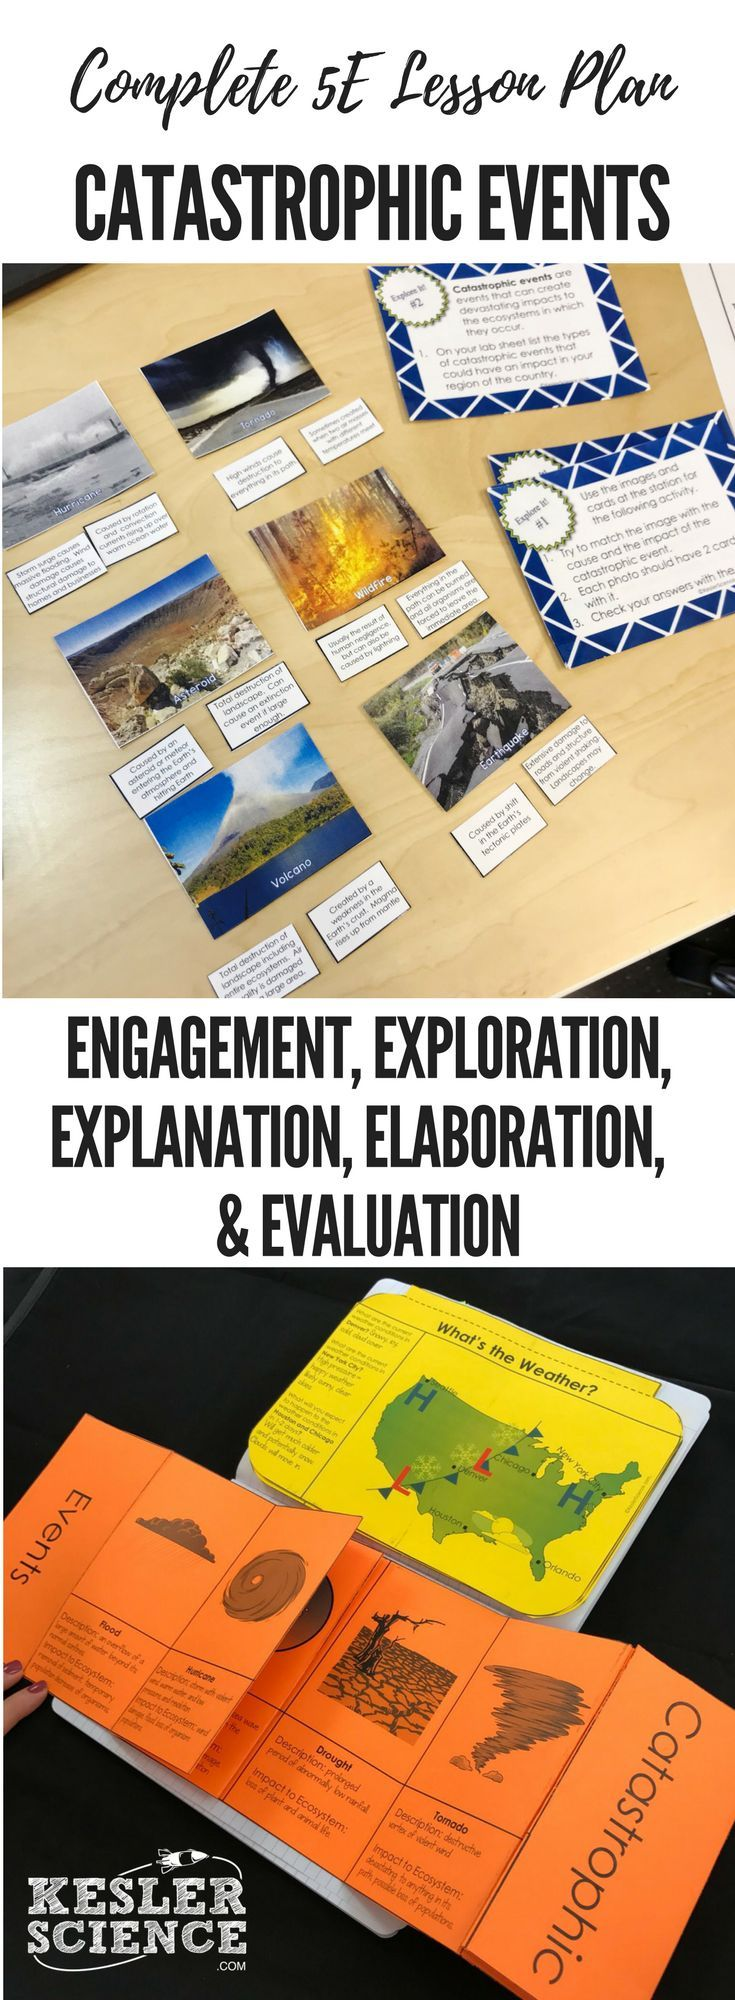 Catastrophic Events 5E Lesson Plan ready to print and teach the ...